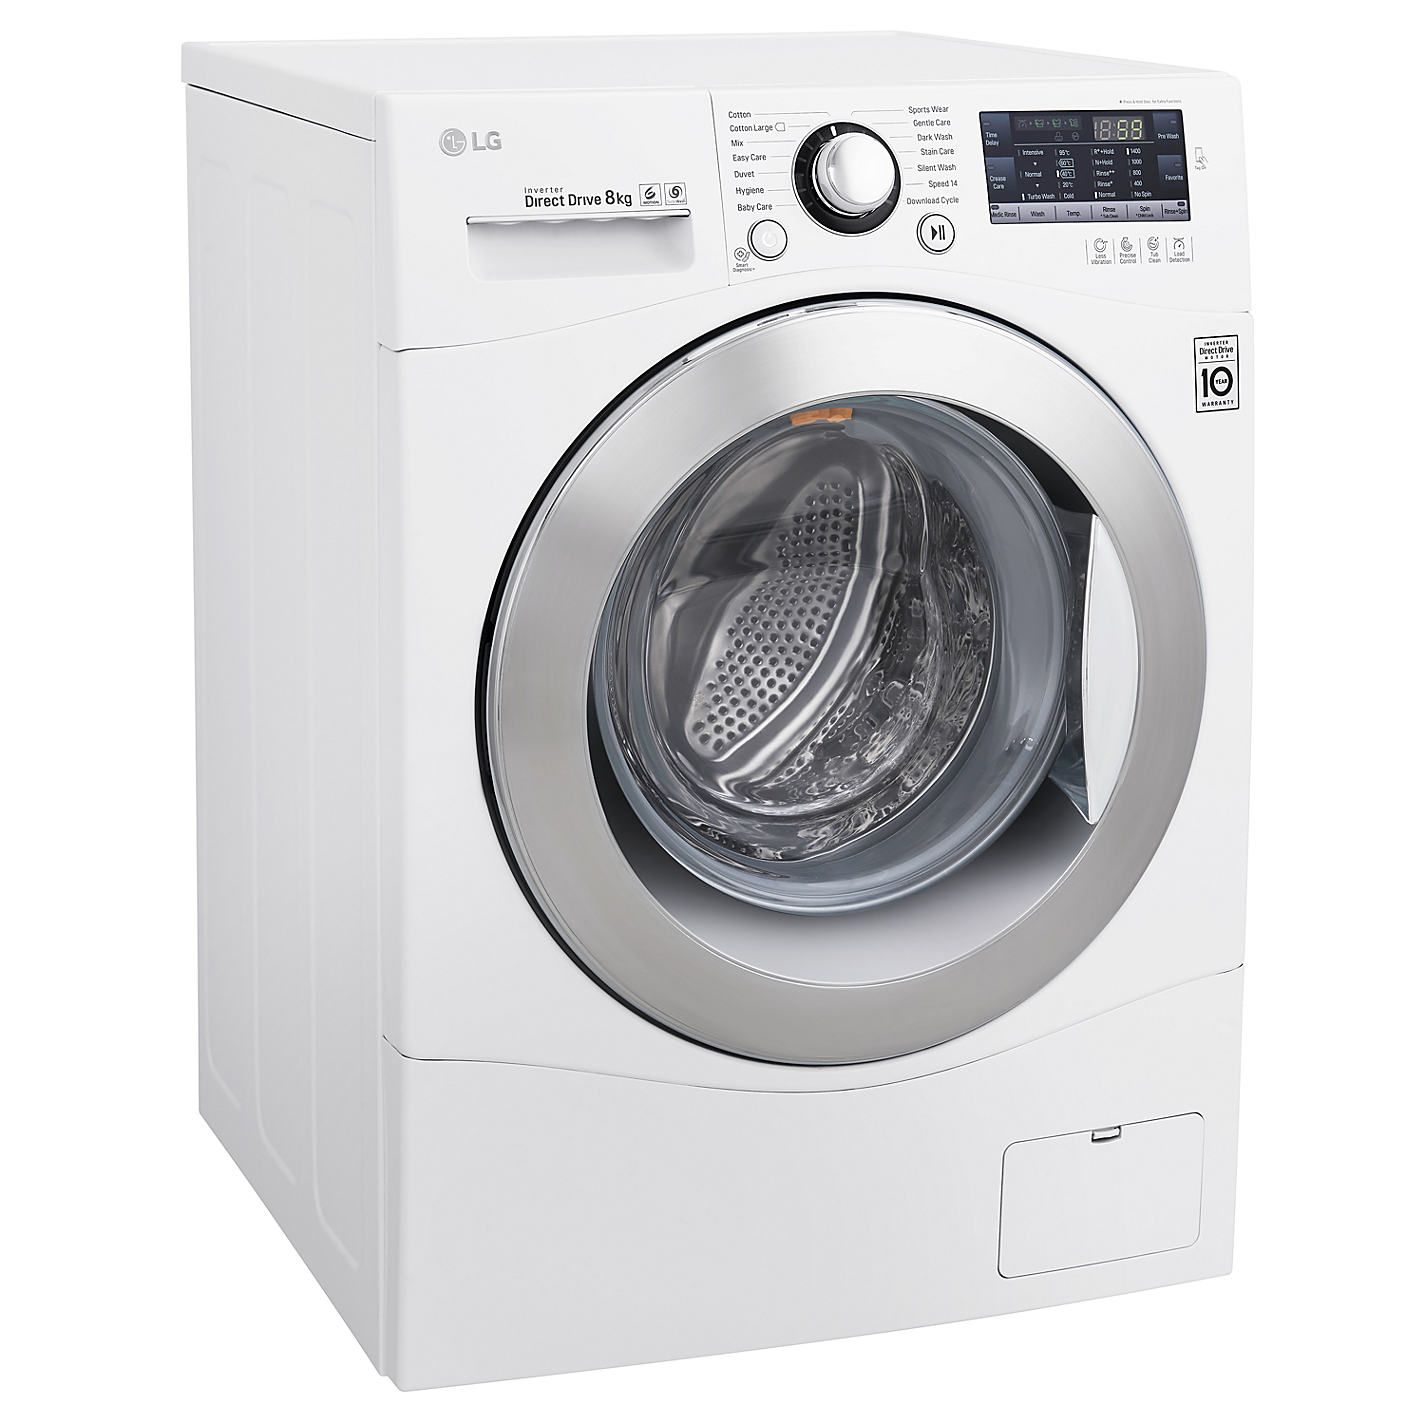 LG Service Centre in Chennai Washing machine service, Lg